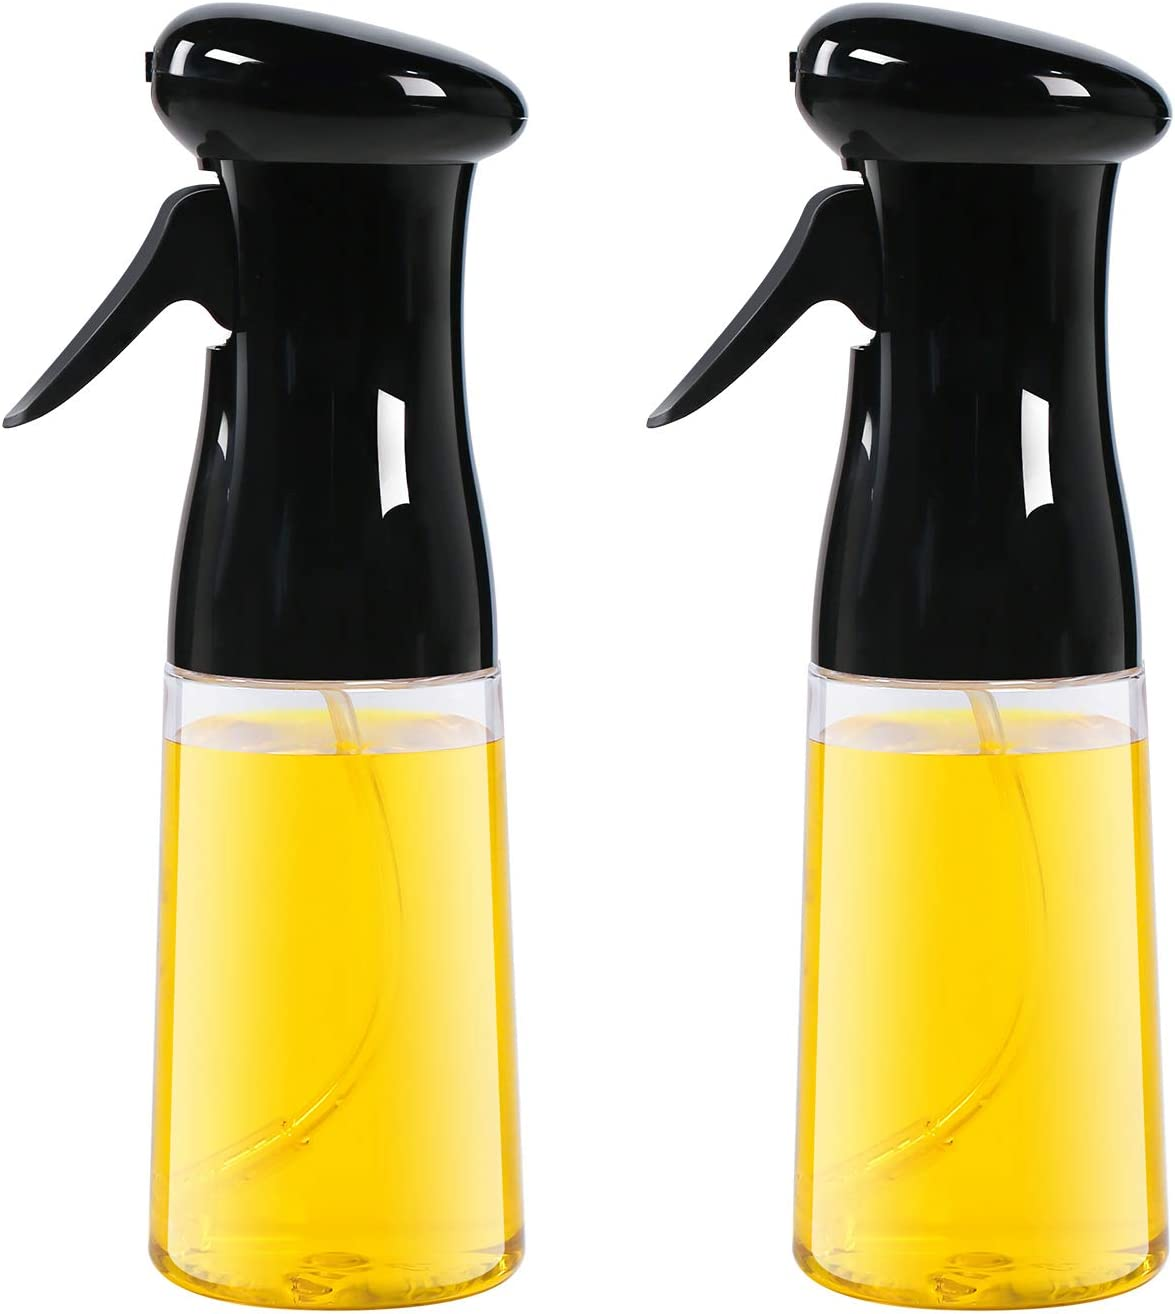 AMINNO Oil Sprayer for Cooking 2 Pack, Oil Sprayer Mister for Air Fryer, Versatile Oil Spray Bottle for Grilling Roasting Baking Salad BBQ, Food Grade BPA free, Ergonomically Designed 7oz/200ml